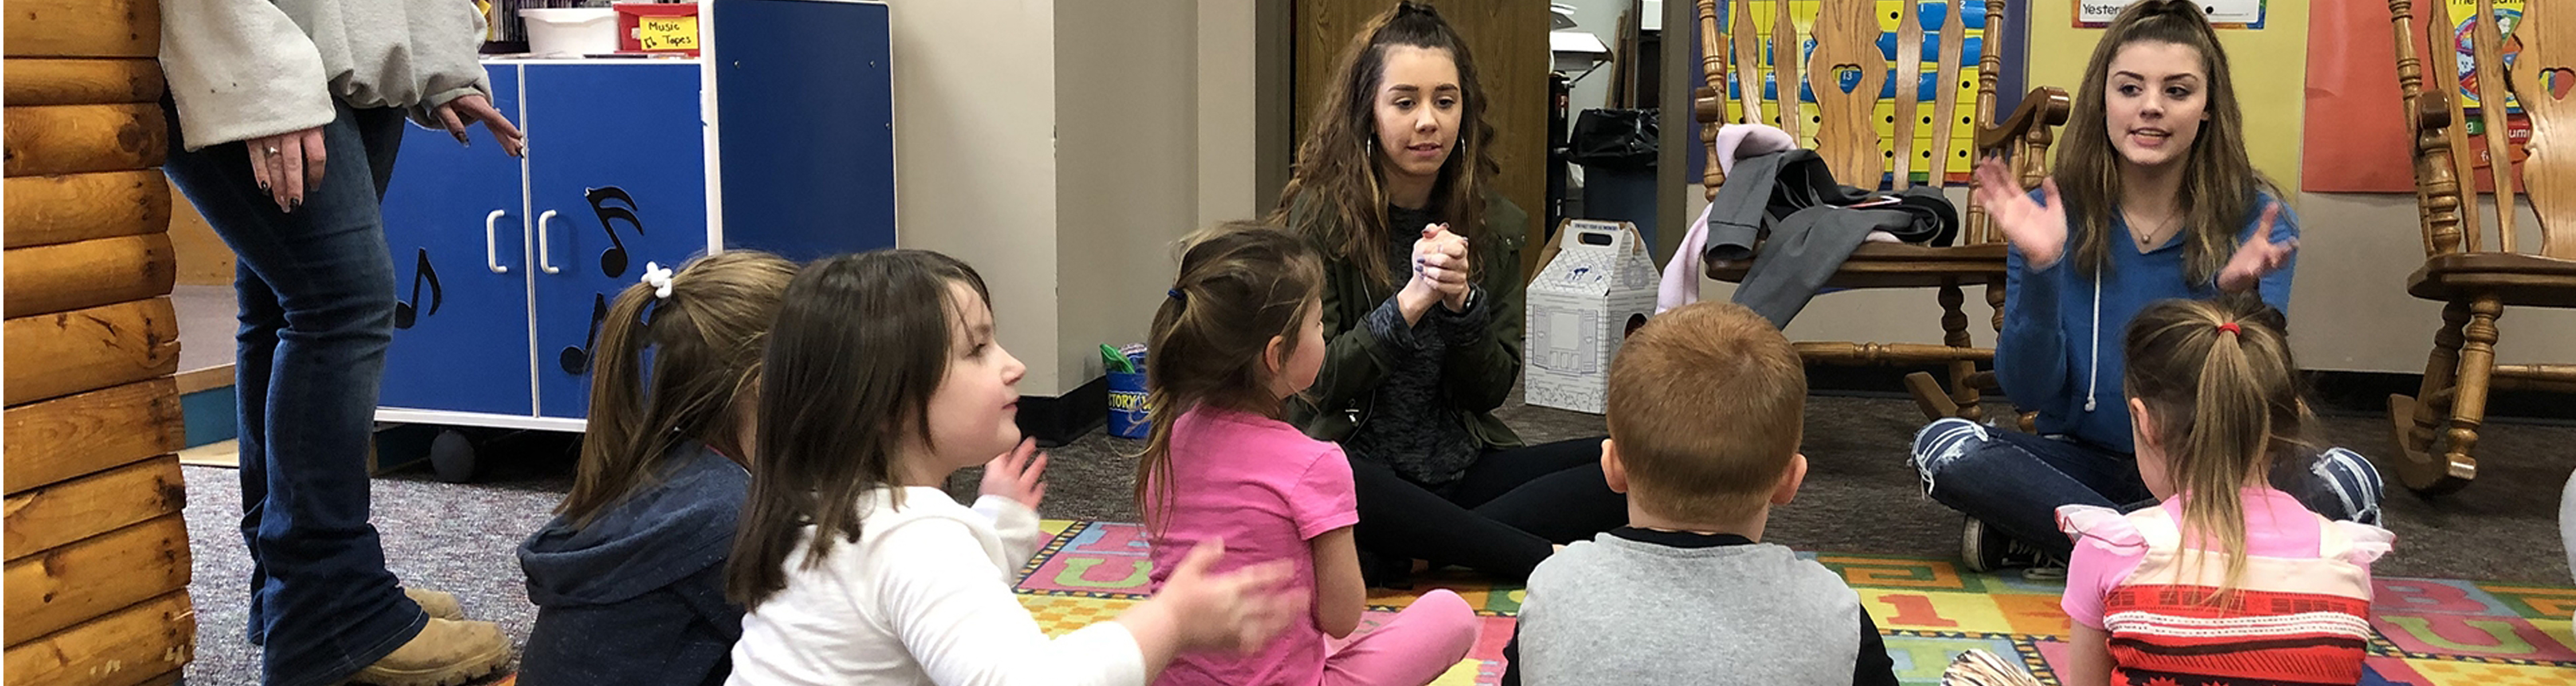 Two teachers sitting on the floor with an early childhood group